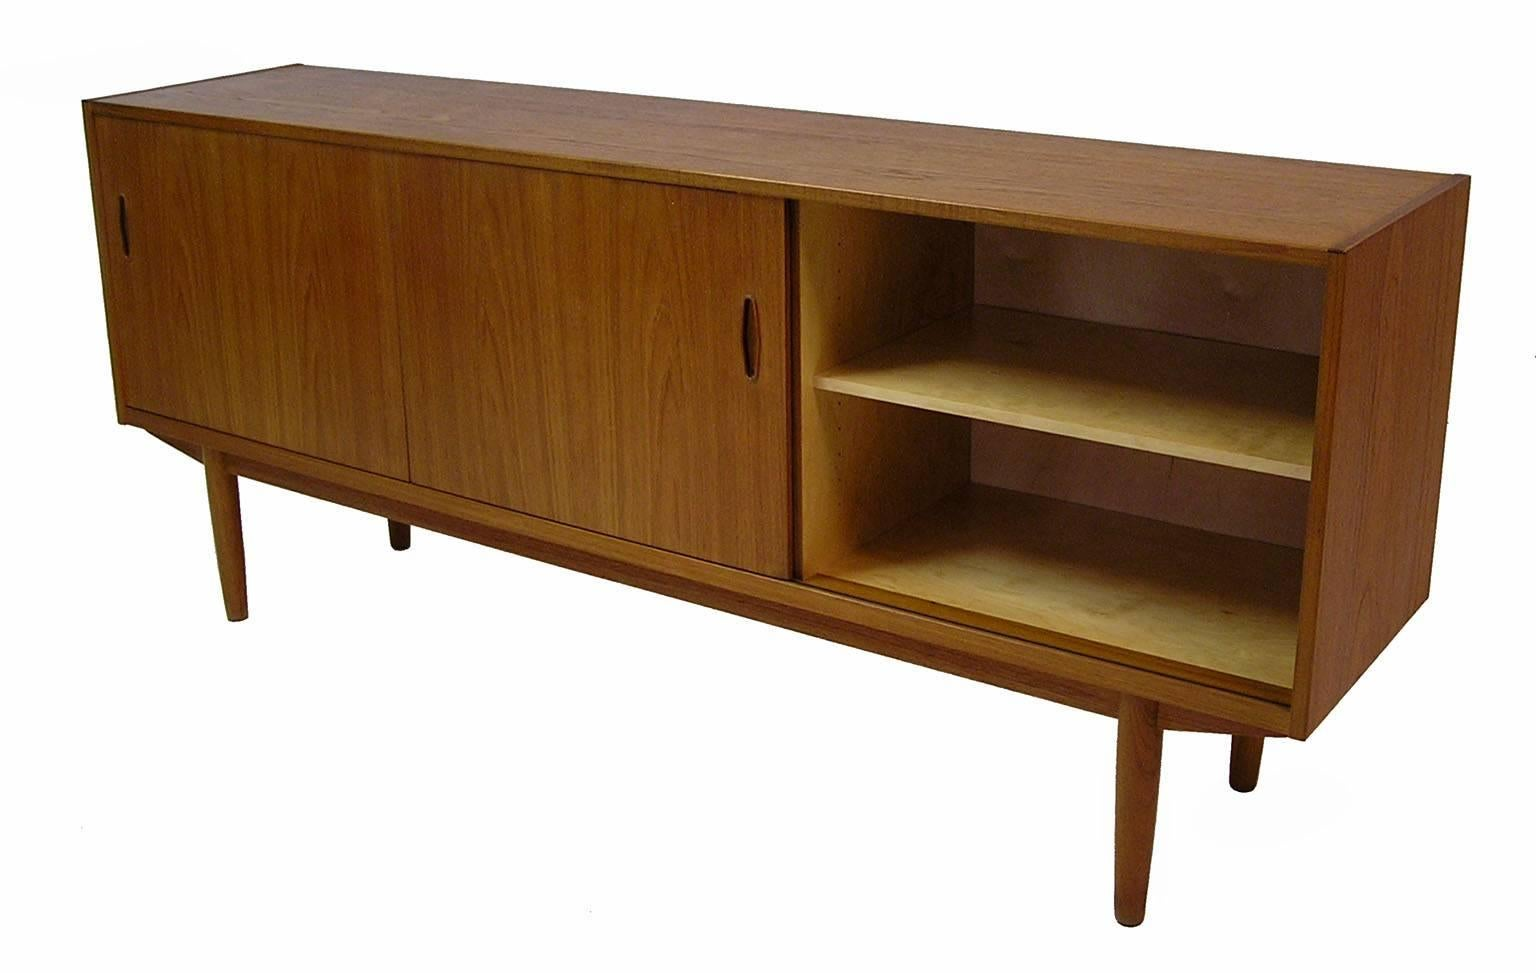 A Gorgeous Teak Sideboard From The 1960s By Nils Jonsson For Troeds Of  Sweden. Well